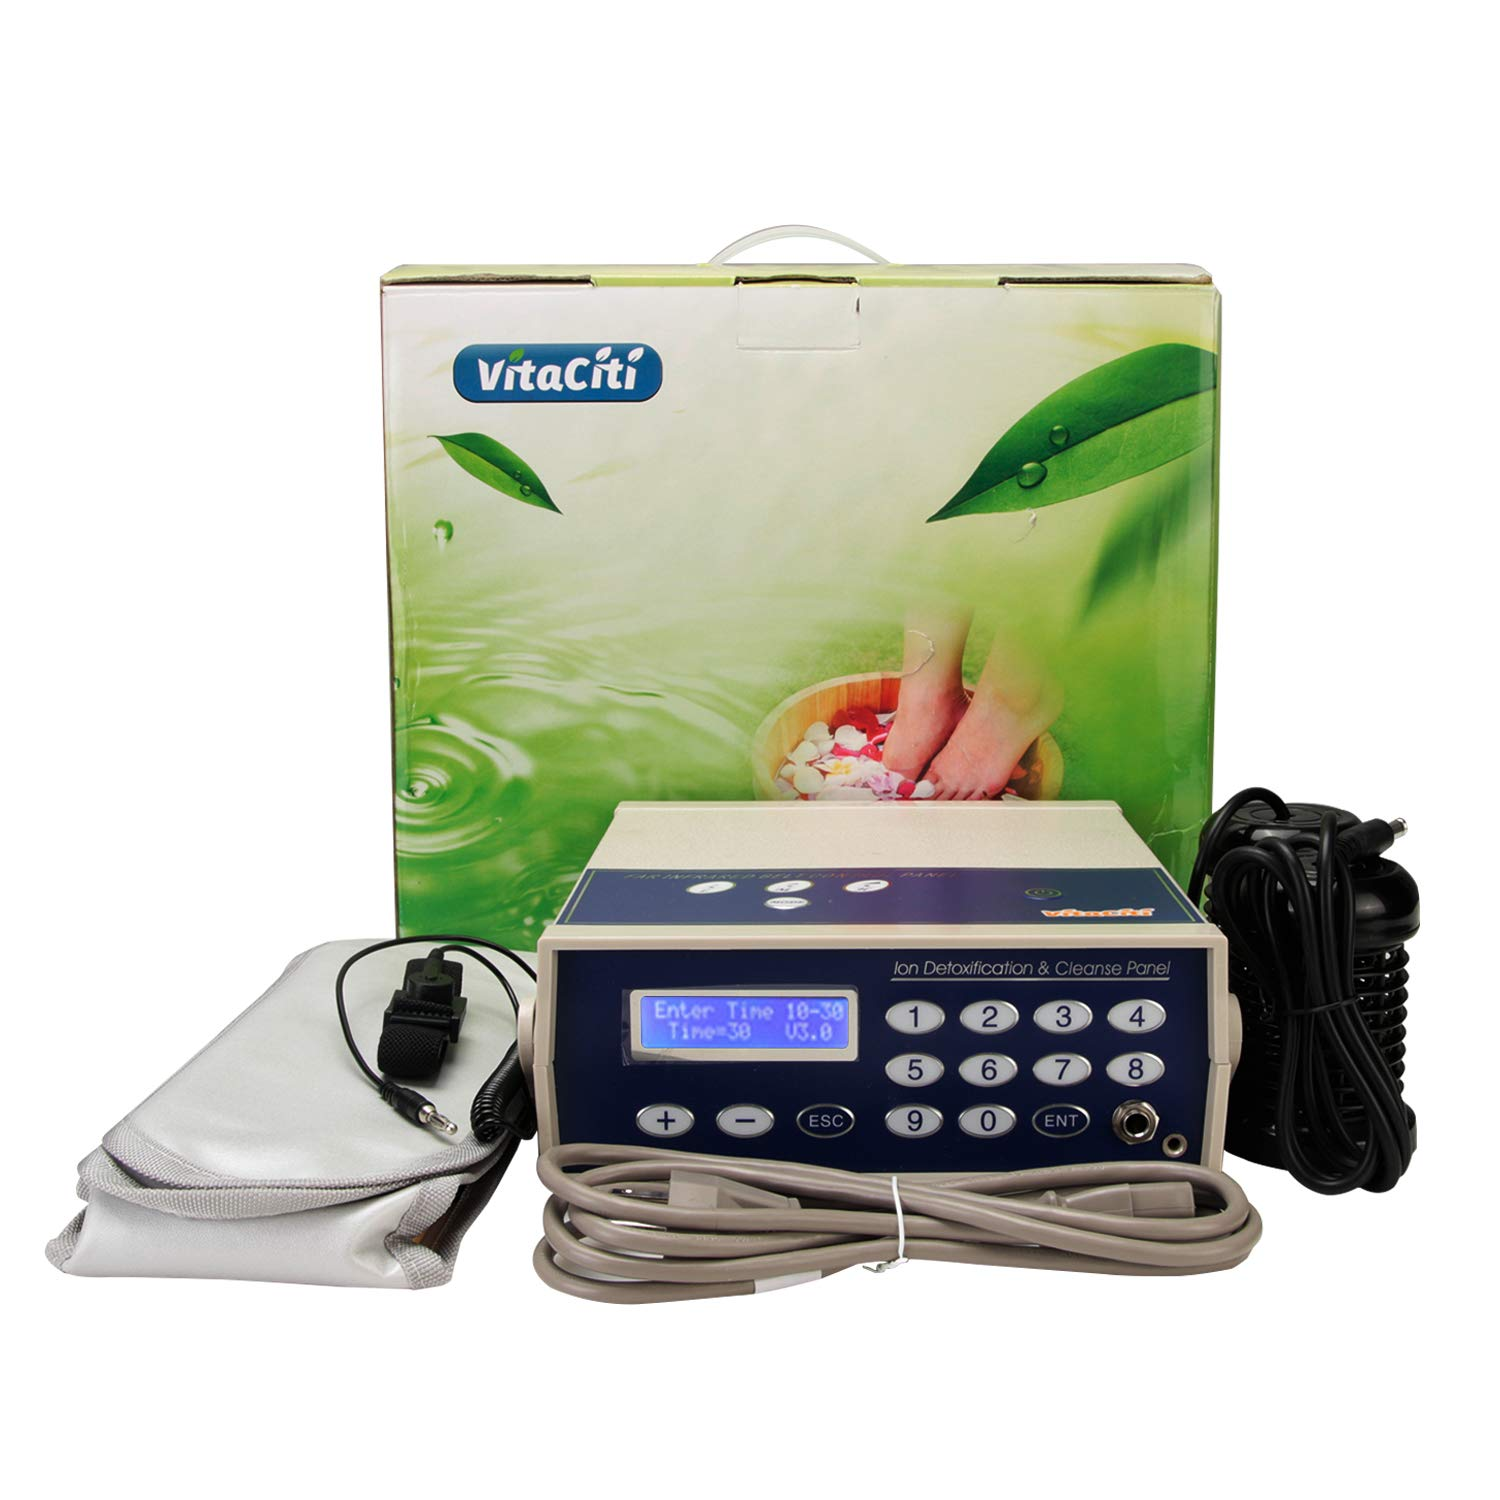 Vitaciti Professional Ionic Detox Foot Bath Spa Chi Cleanse Machine with Two Arrays